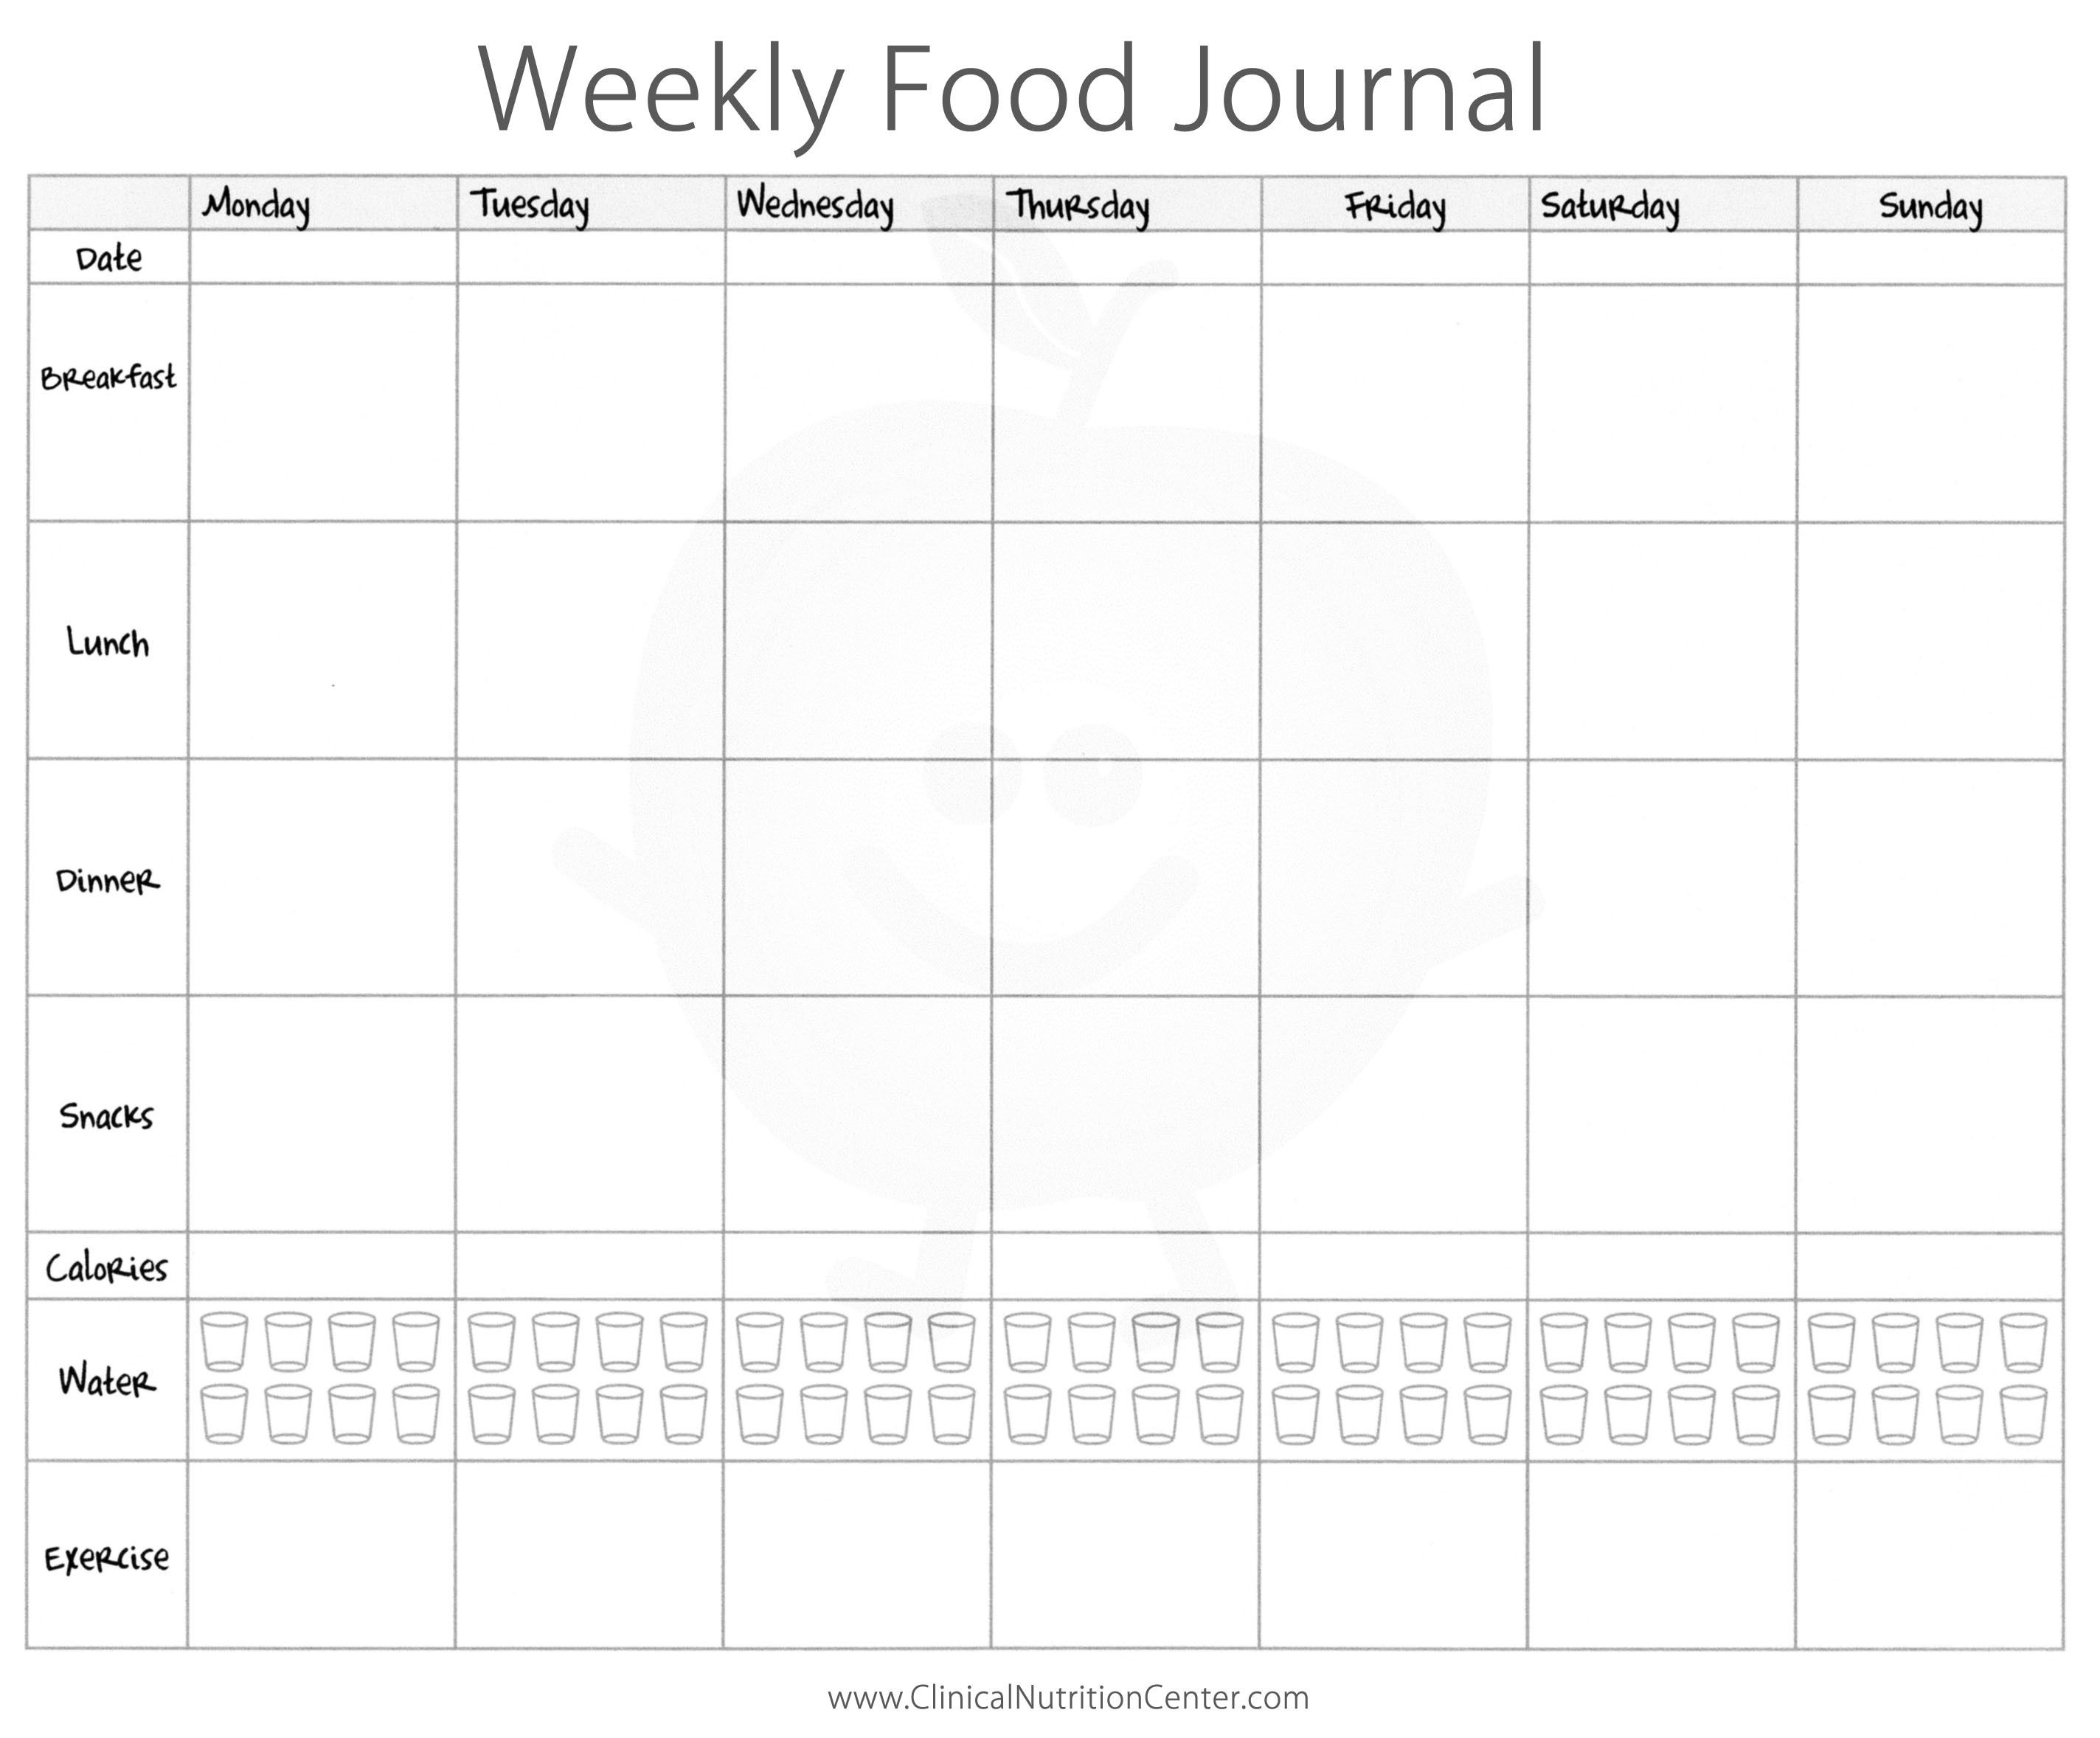 Weekly Food Journal Printable